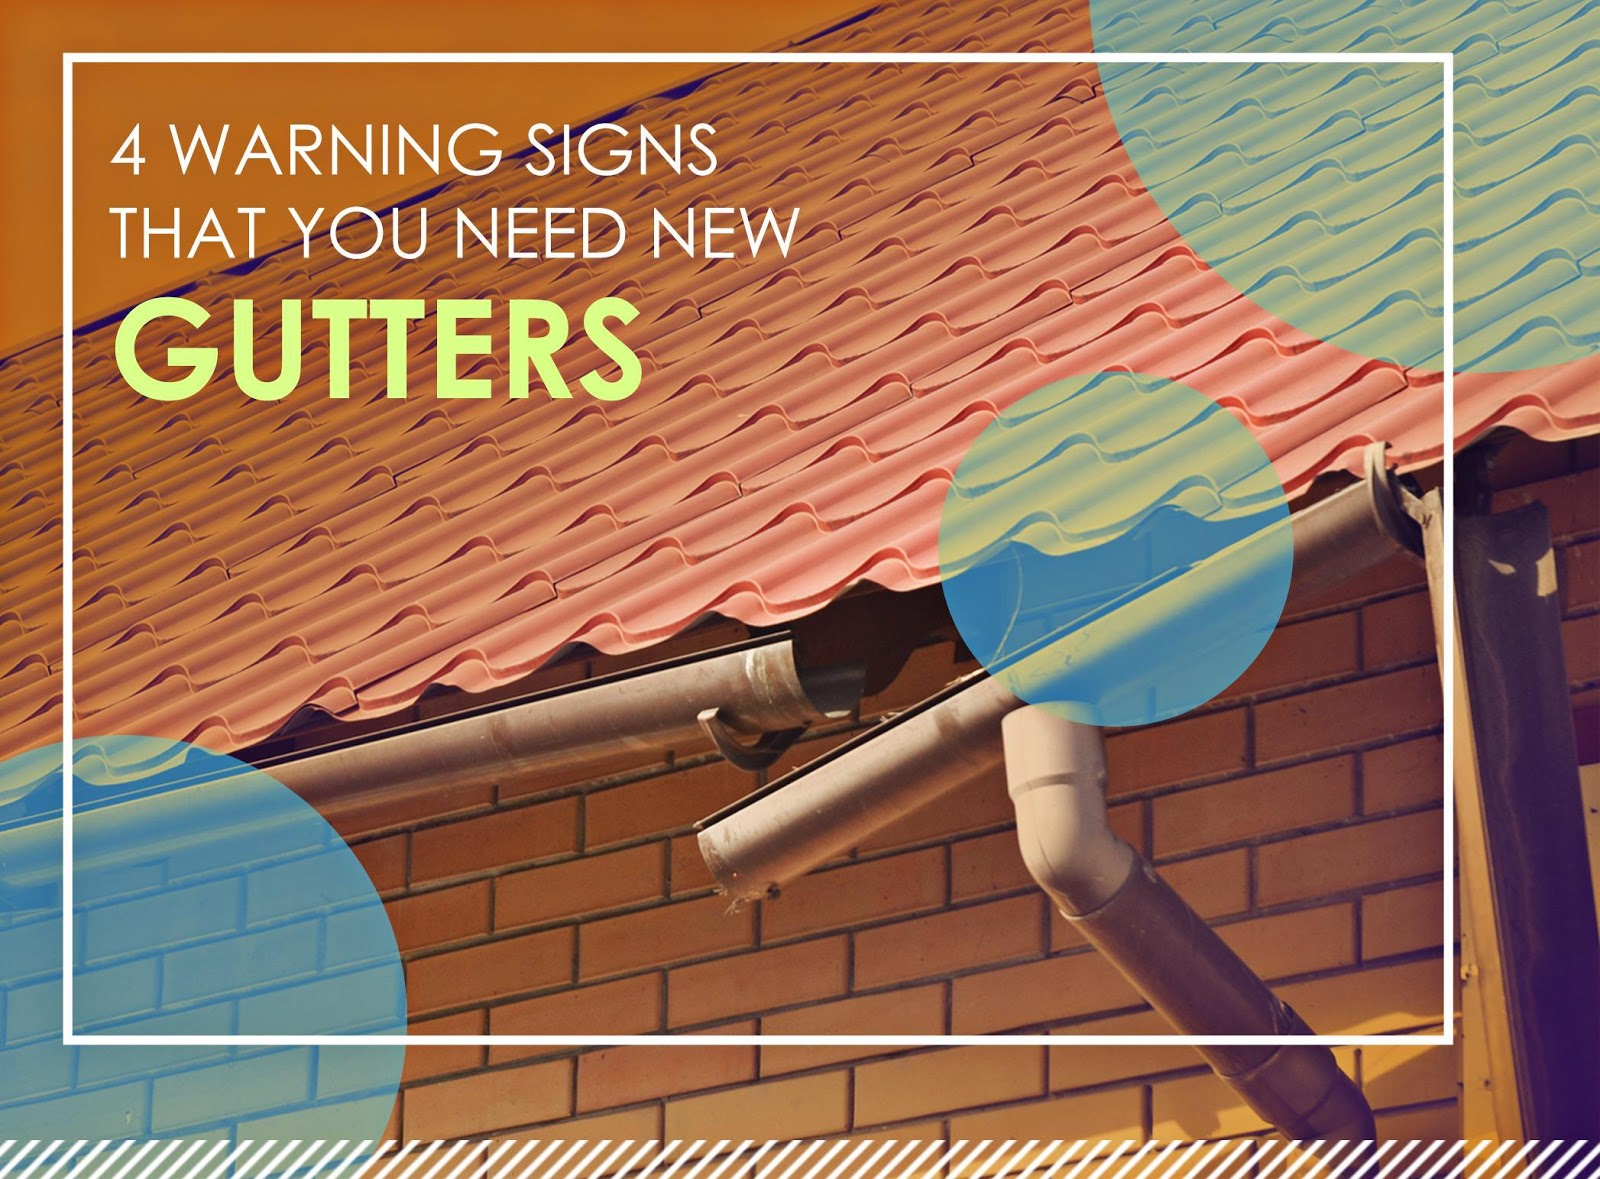 Questions and Answers About Gutters